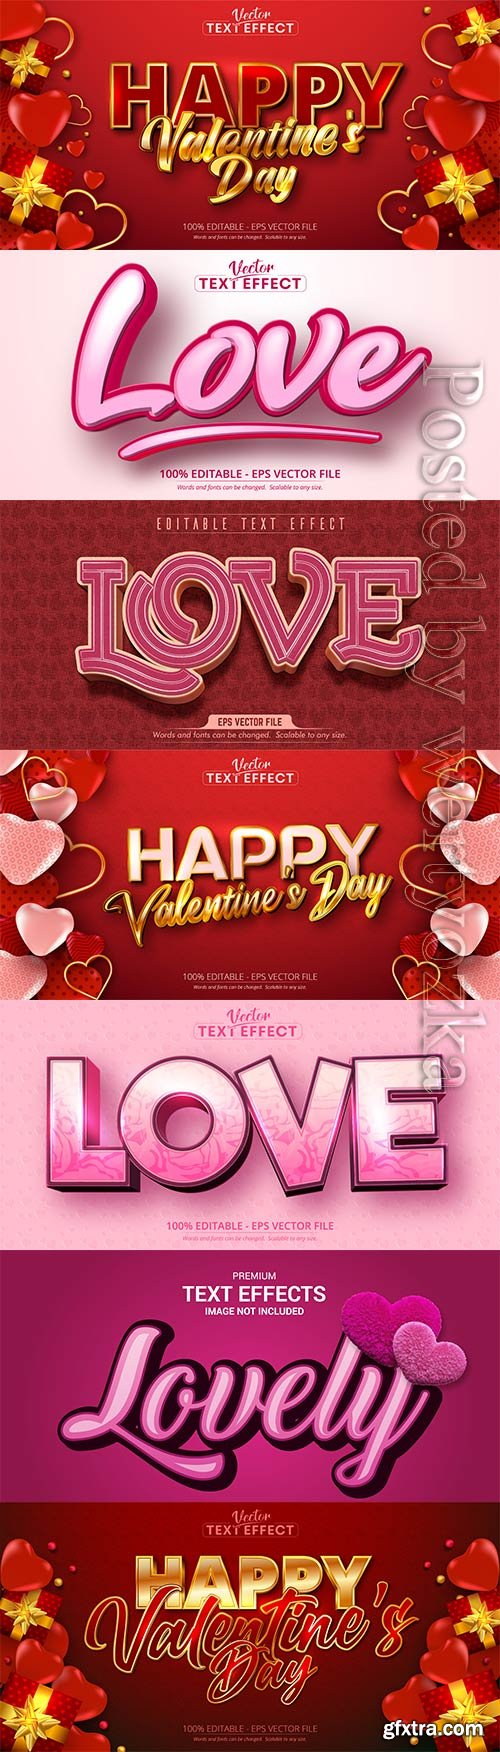 Valentine text effects style in vector with hearts